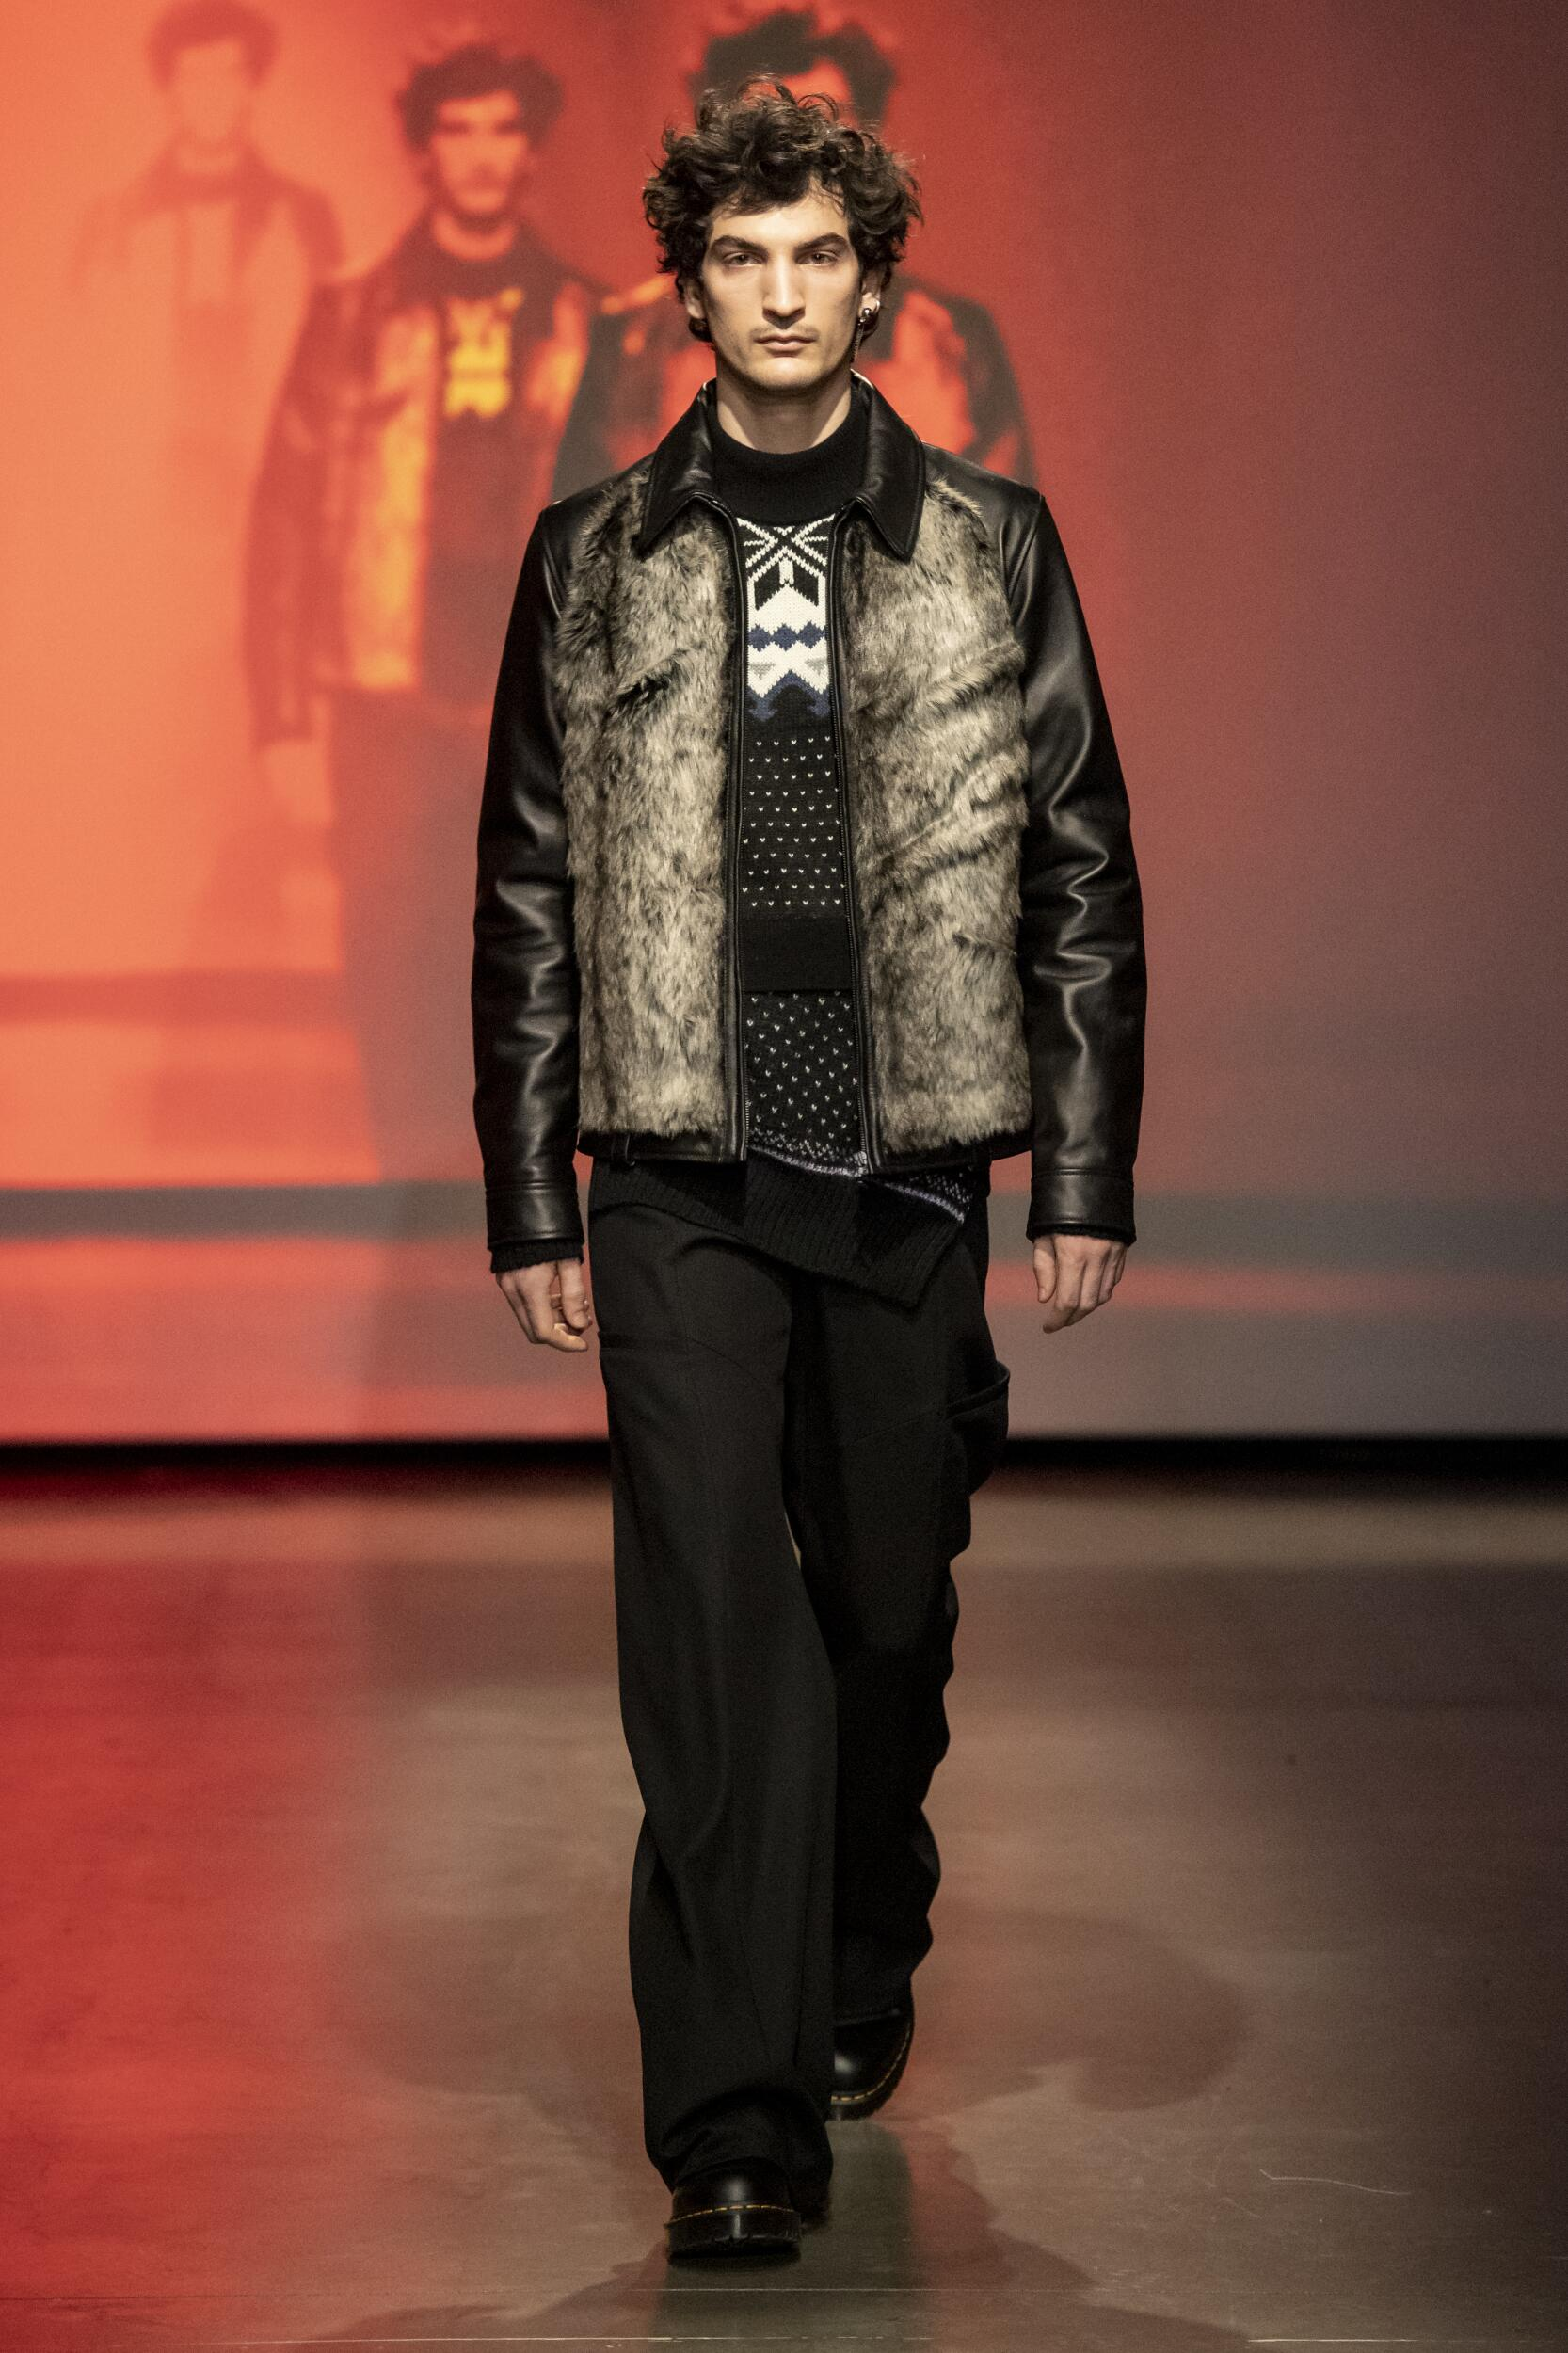 Marine Serre Winter Menswear 2020 Catwalk